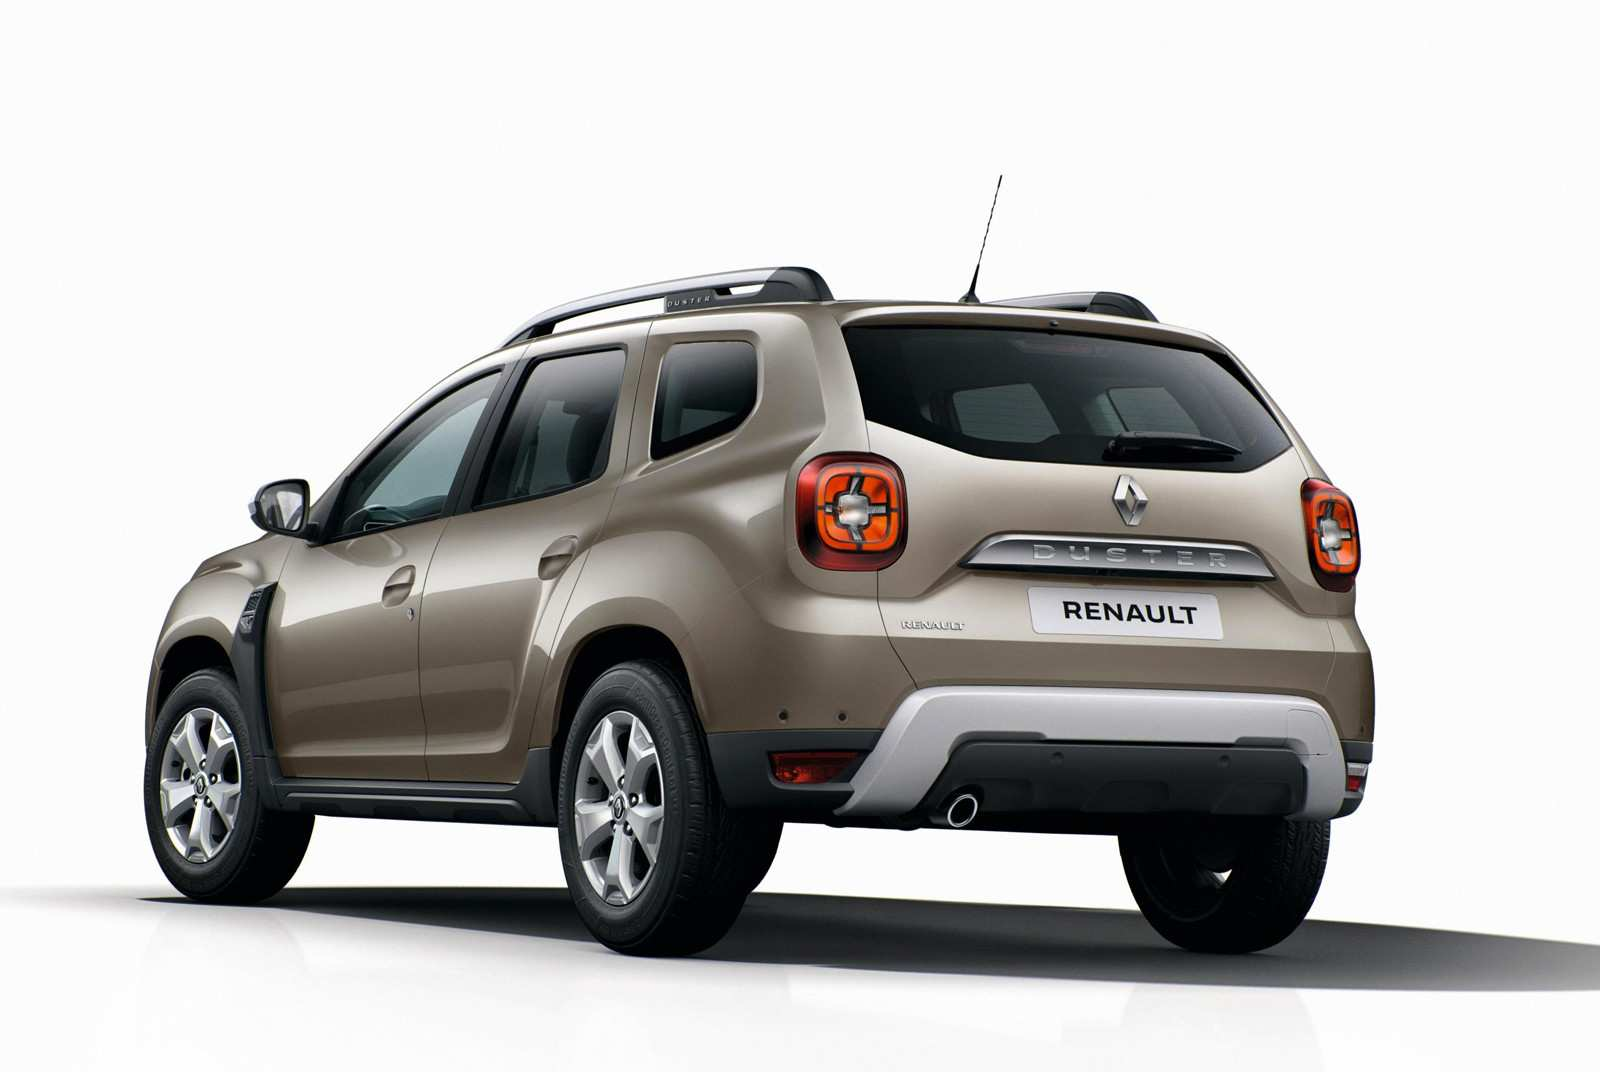 71 Concept of Renault Duster 2019 Colombia Exterior by Renault Duster 2019 Colombia